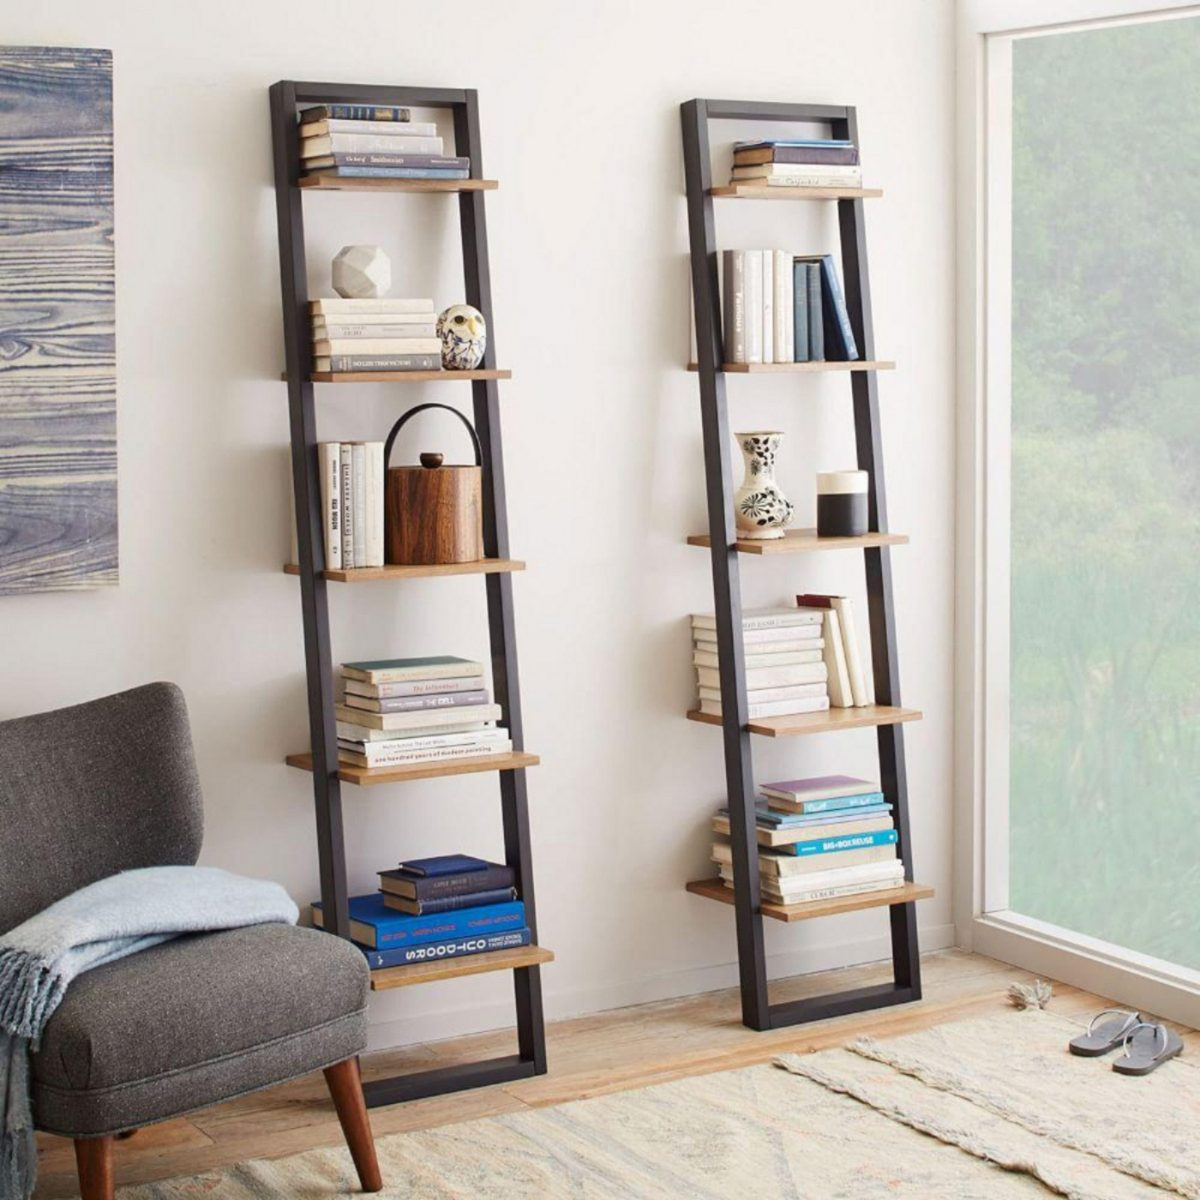 2 colour leaning ladder shelves